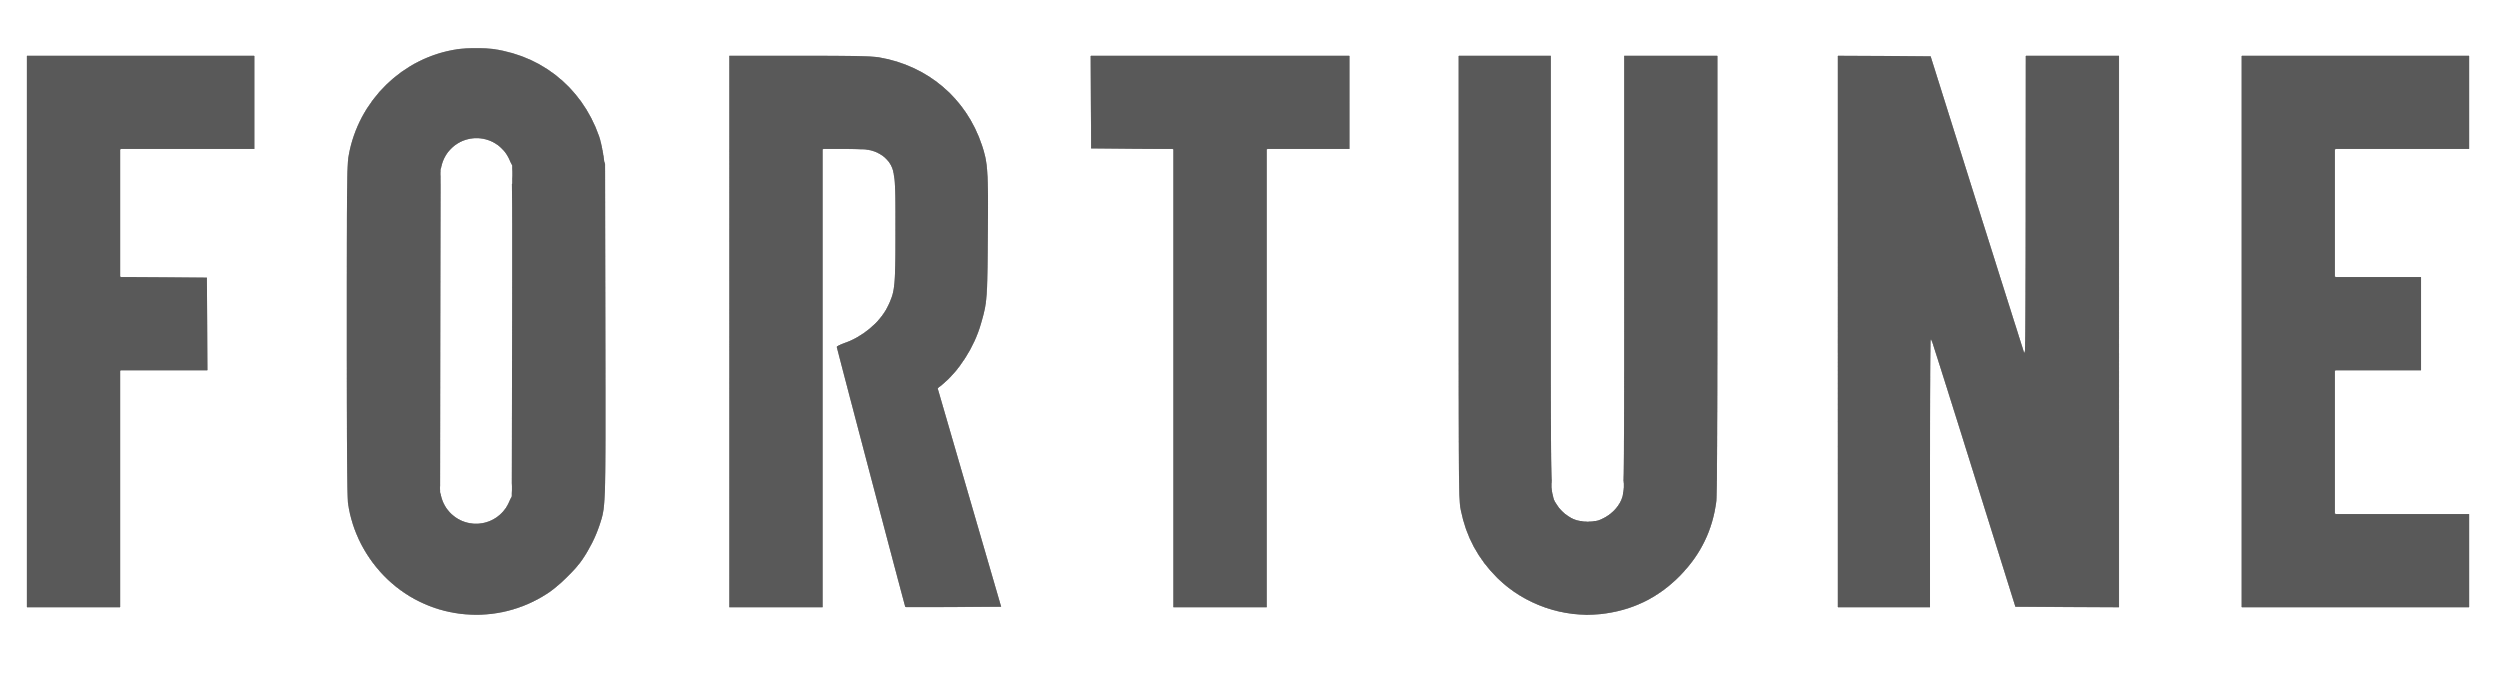 Fortune_logo.png